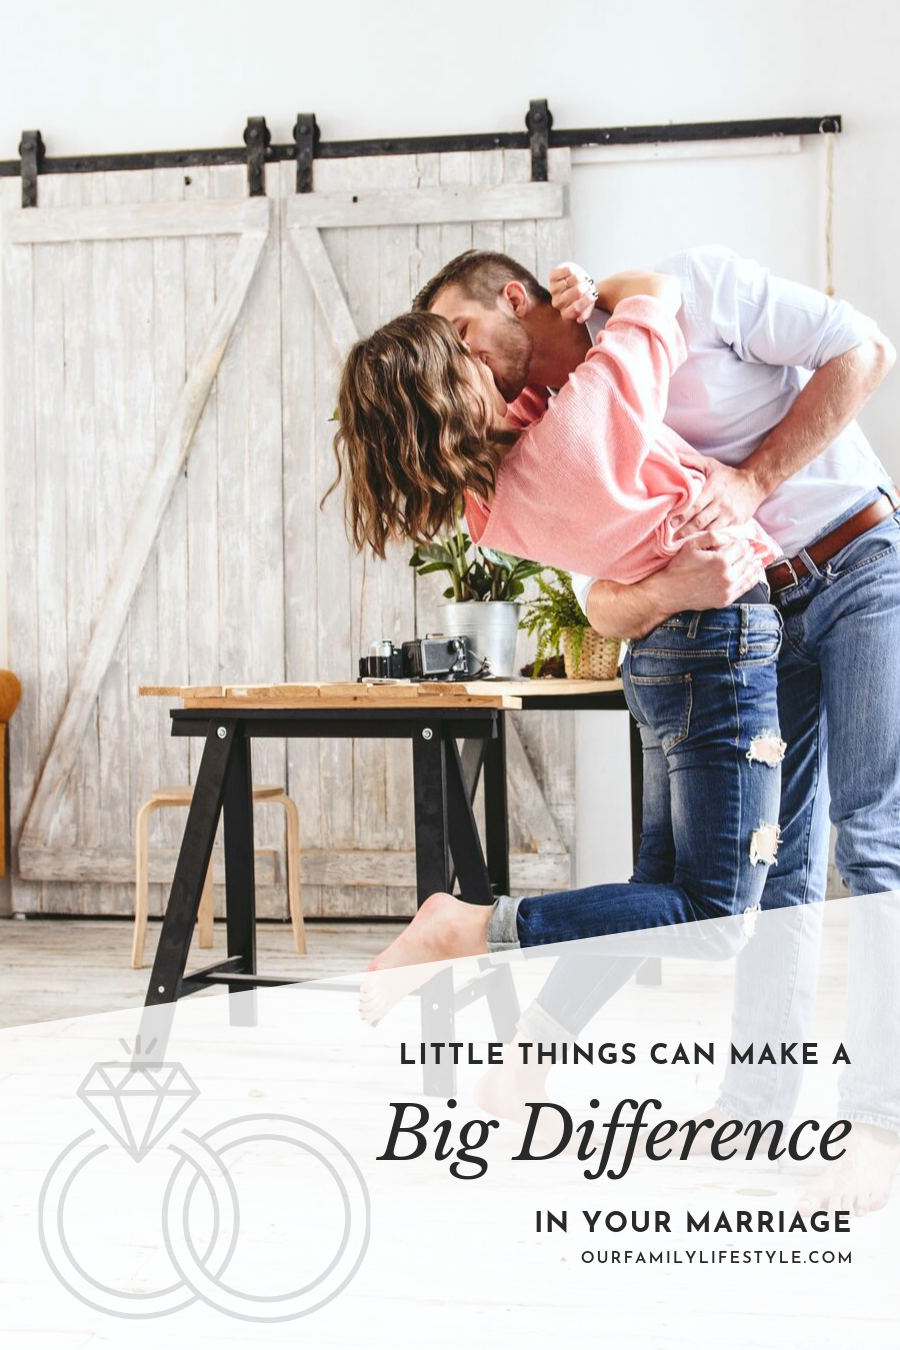 Little Things Can Make a Big Difference in Your Marriage